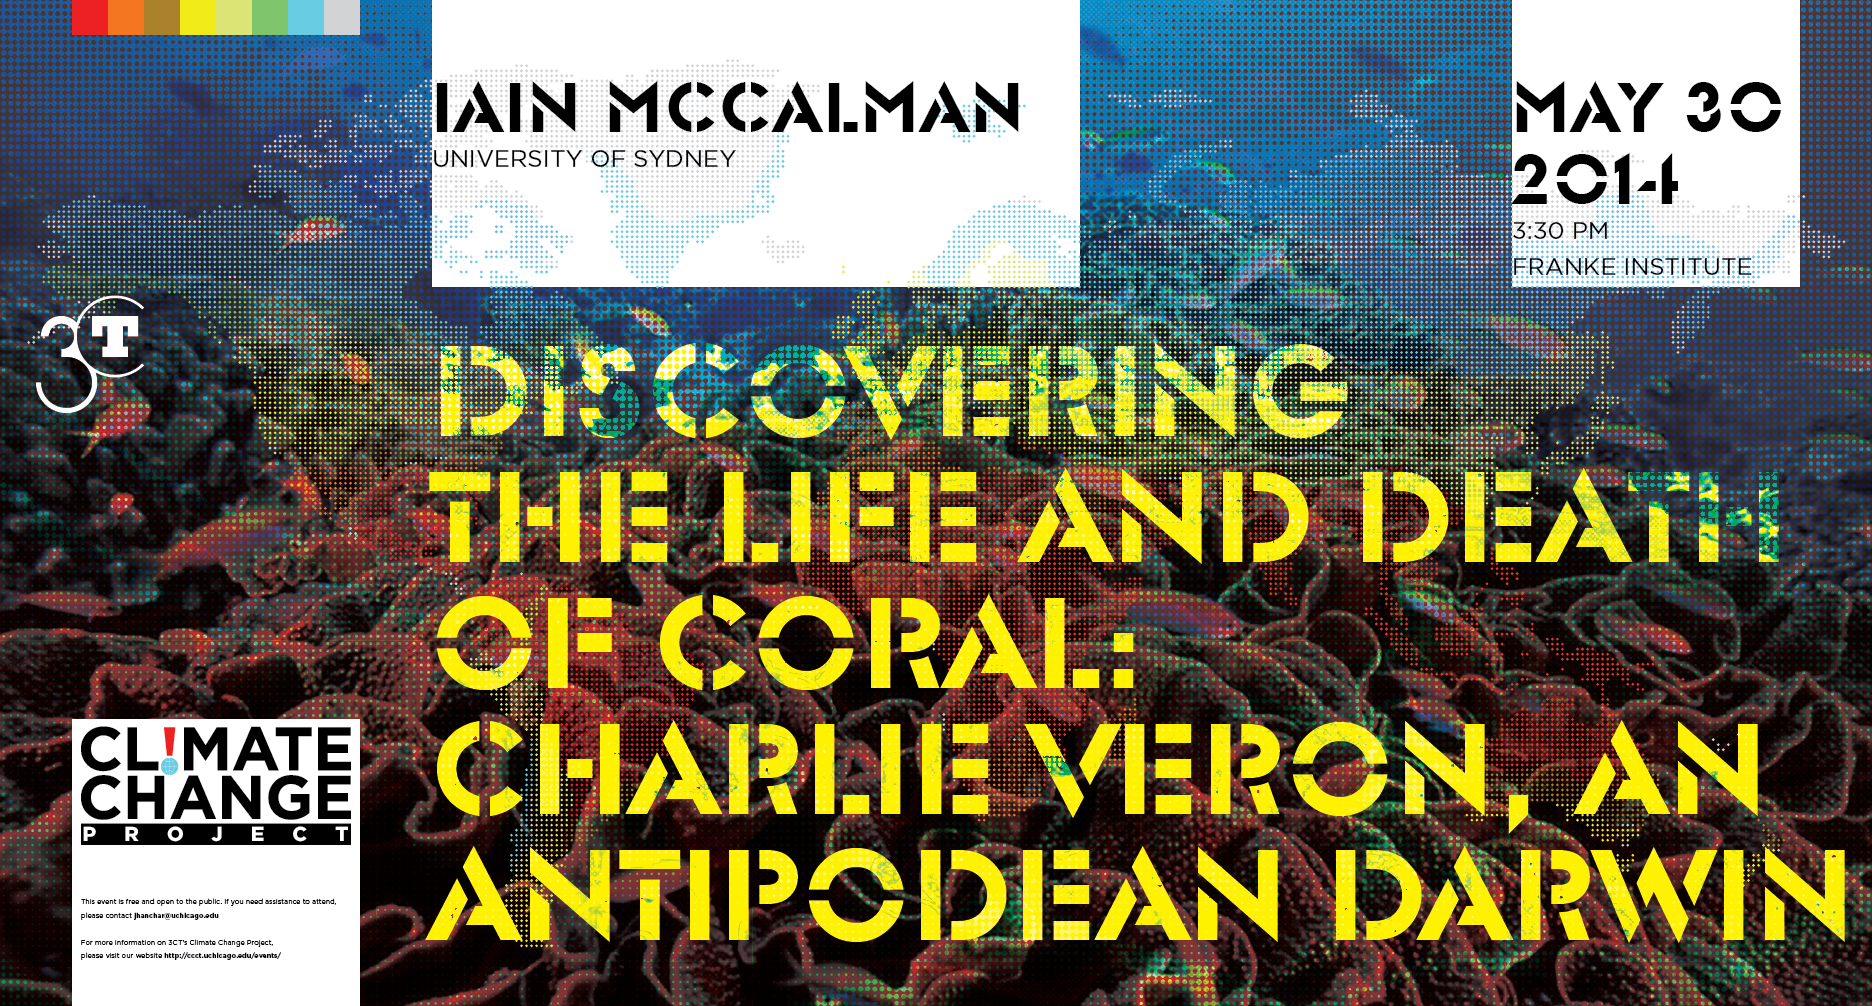 poster for Iain McCalman Climate Change event at the Franke Institute